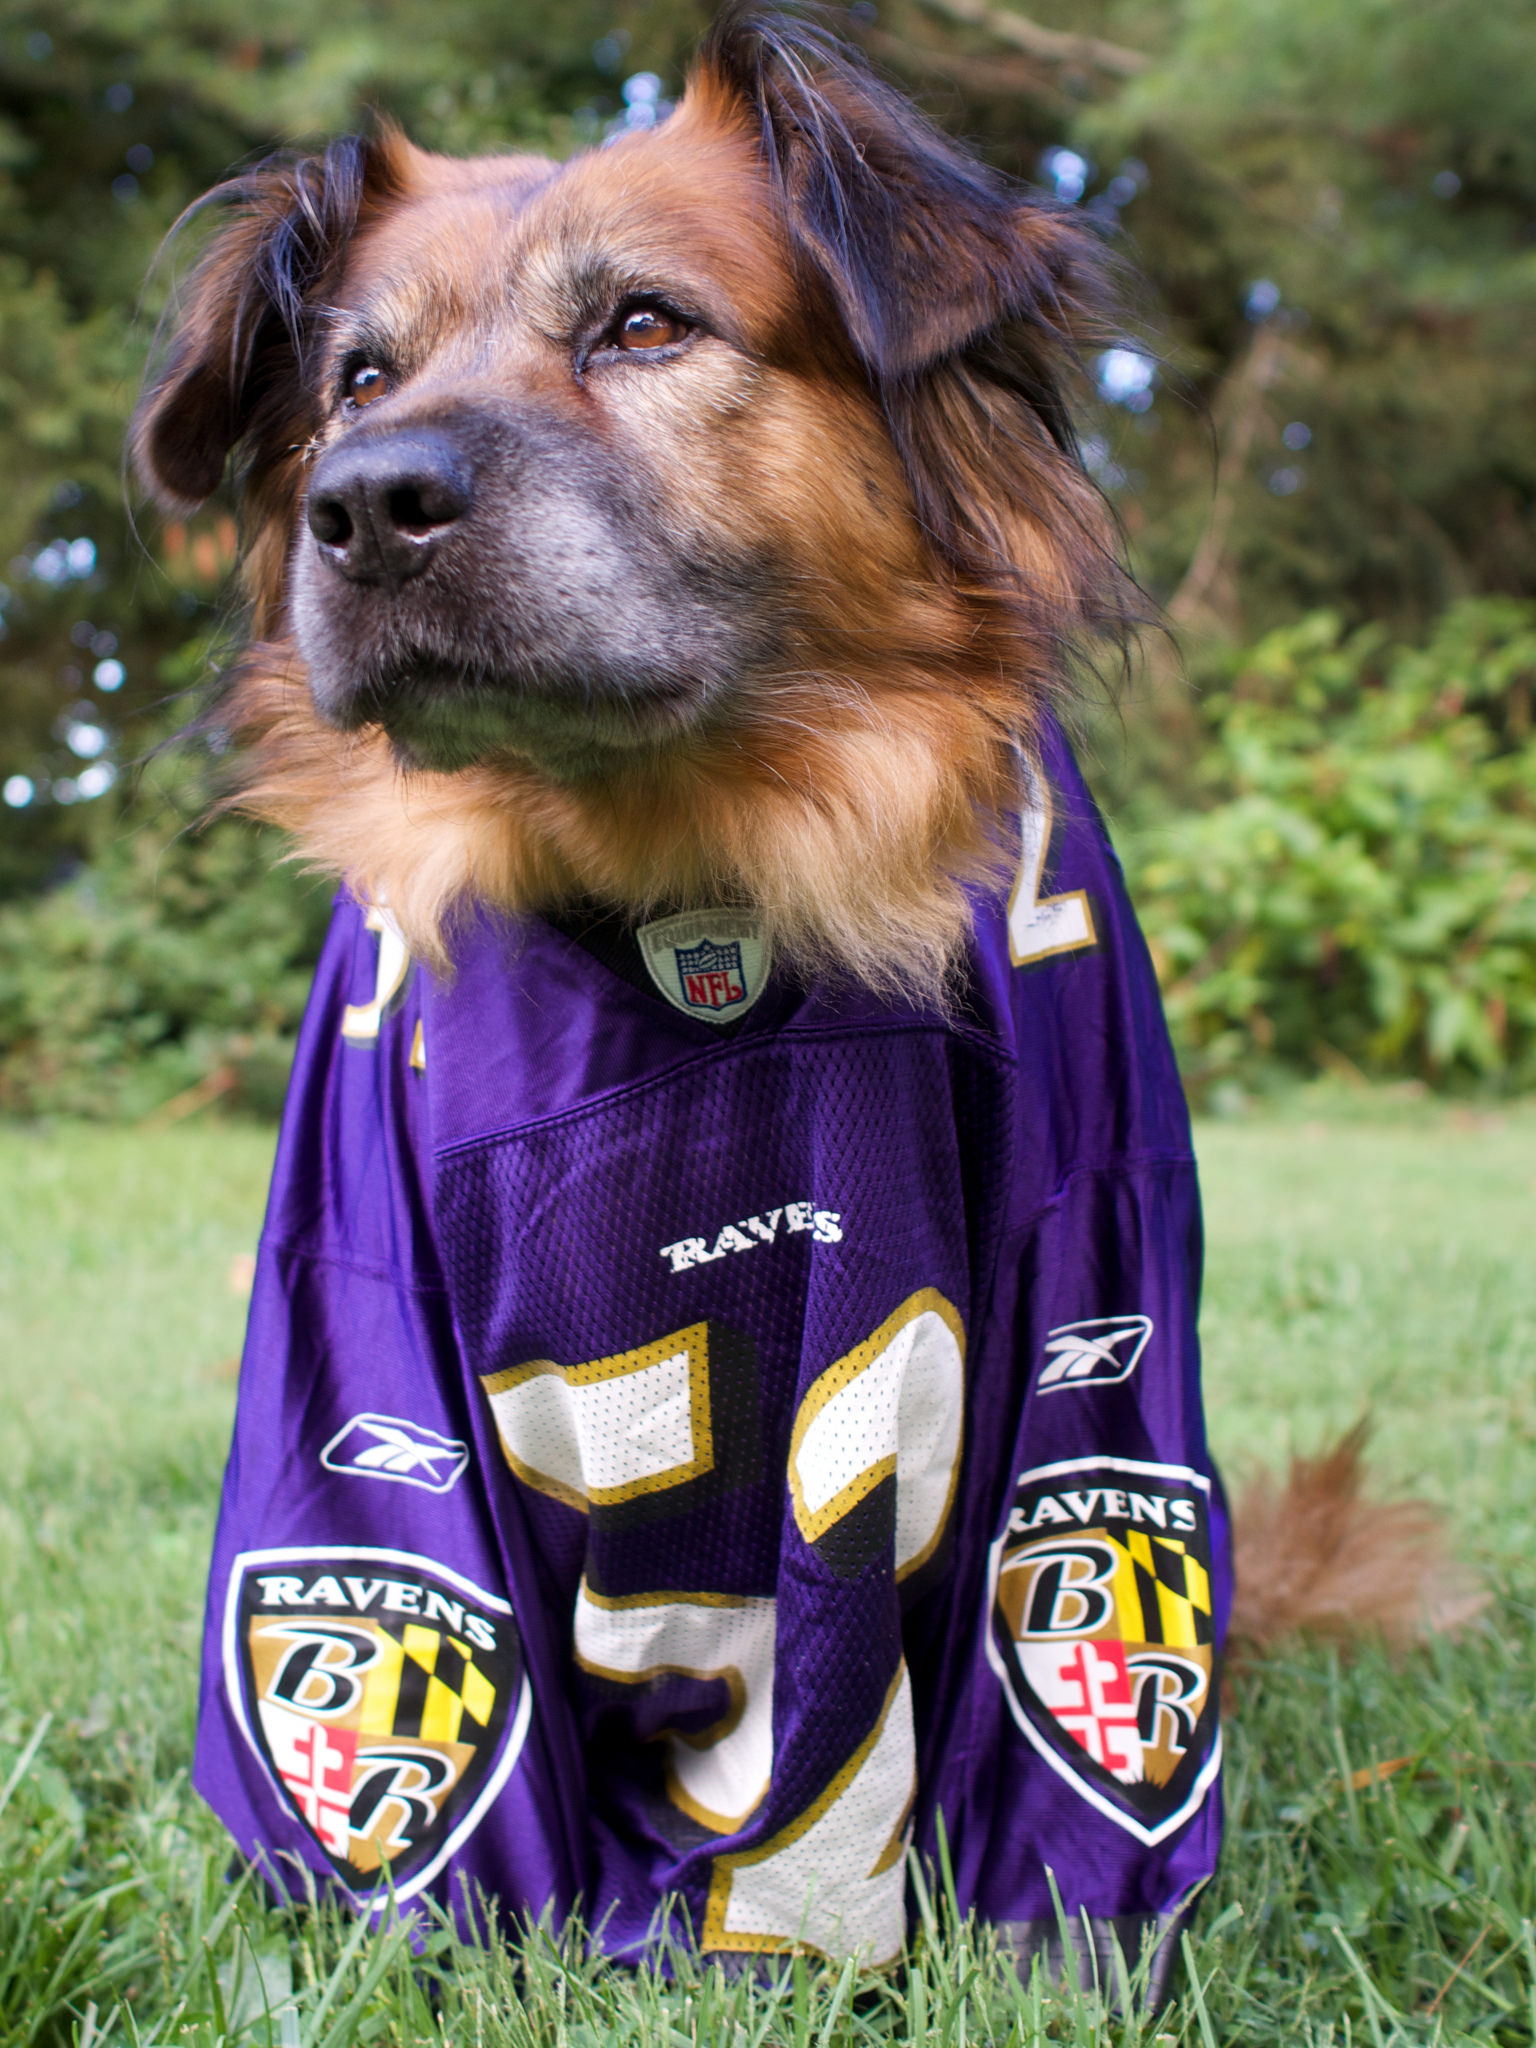 Dog in a jersey